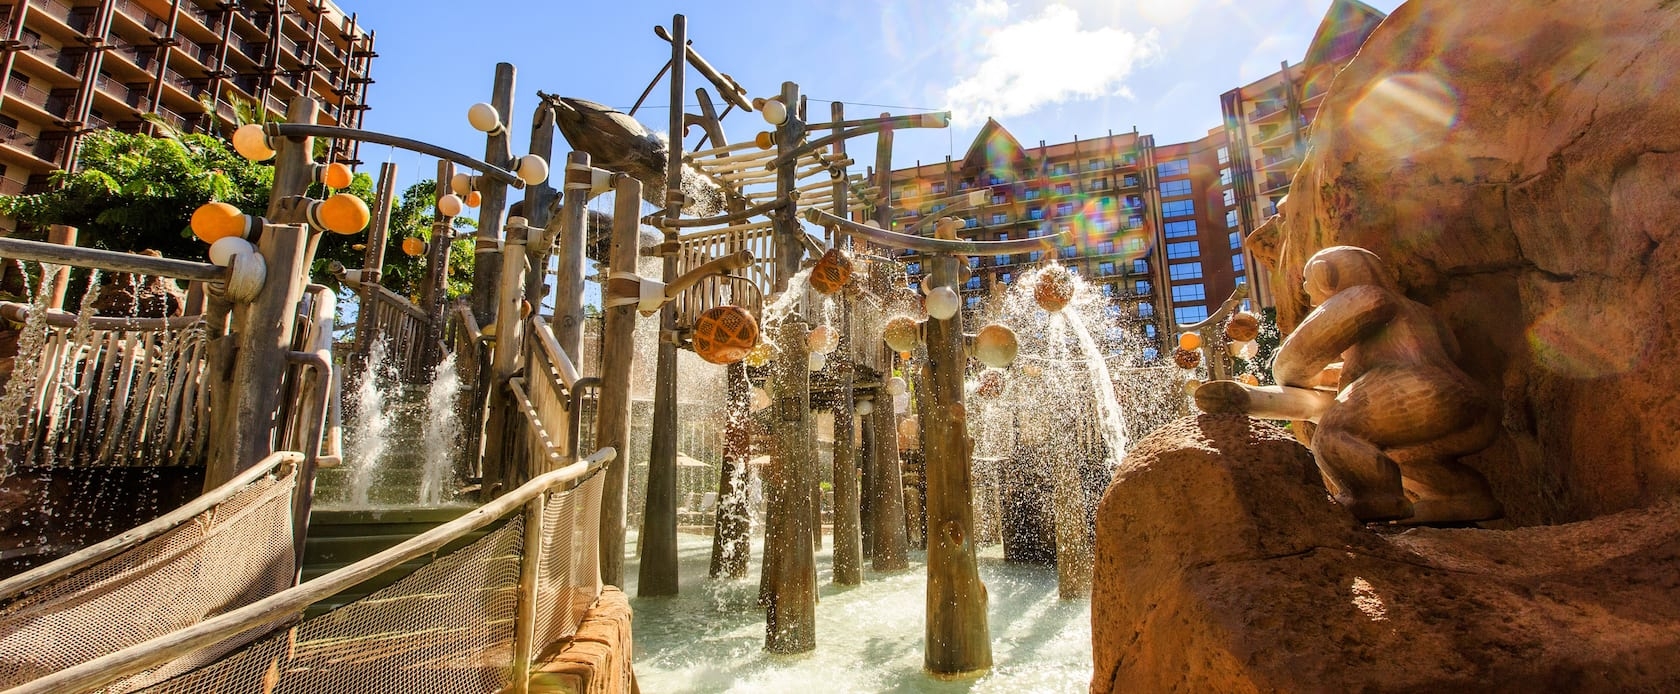 Water spills down from the Menehune Bridge as the Resort's rooms and suites tower in the background